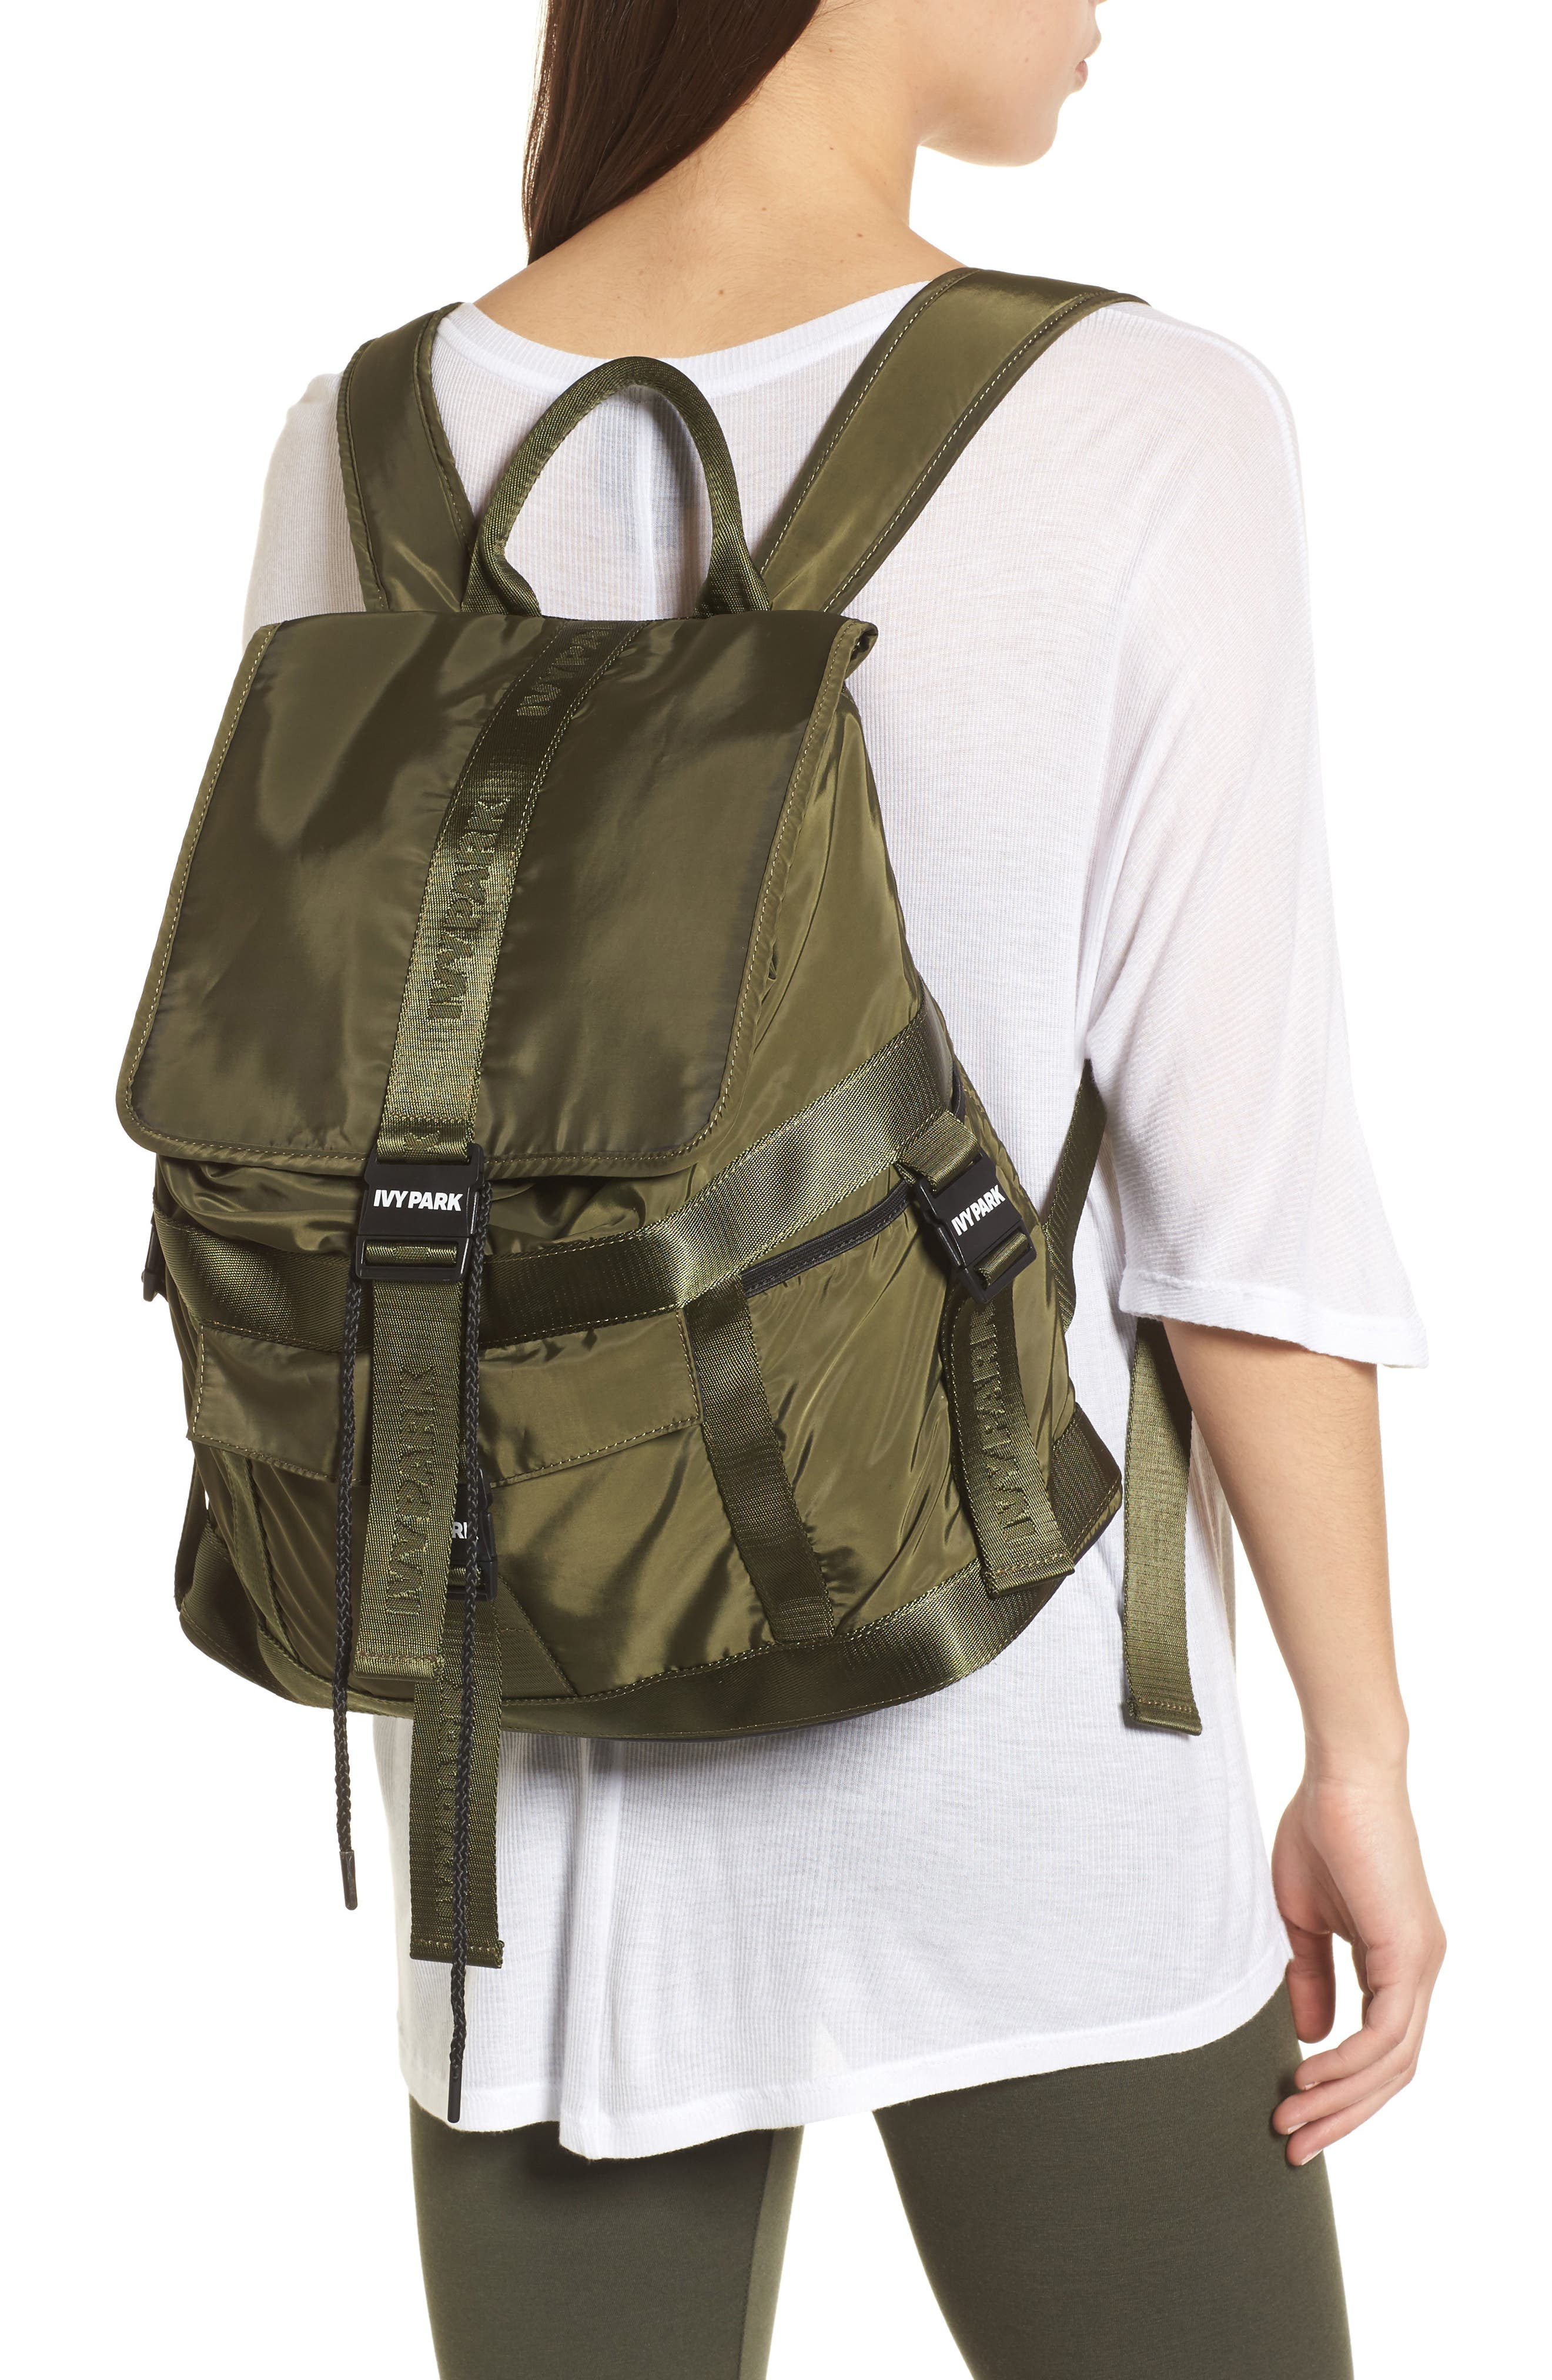 Parachute Strap Backpack,                             Alternate thumbnail 2, color,                             310